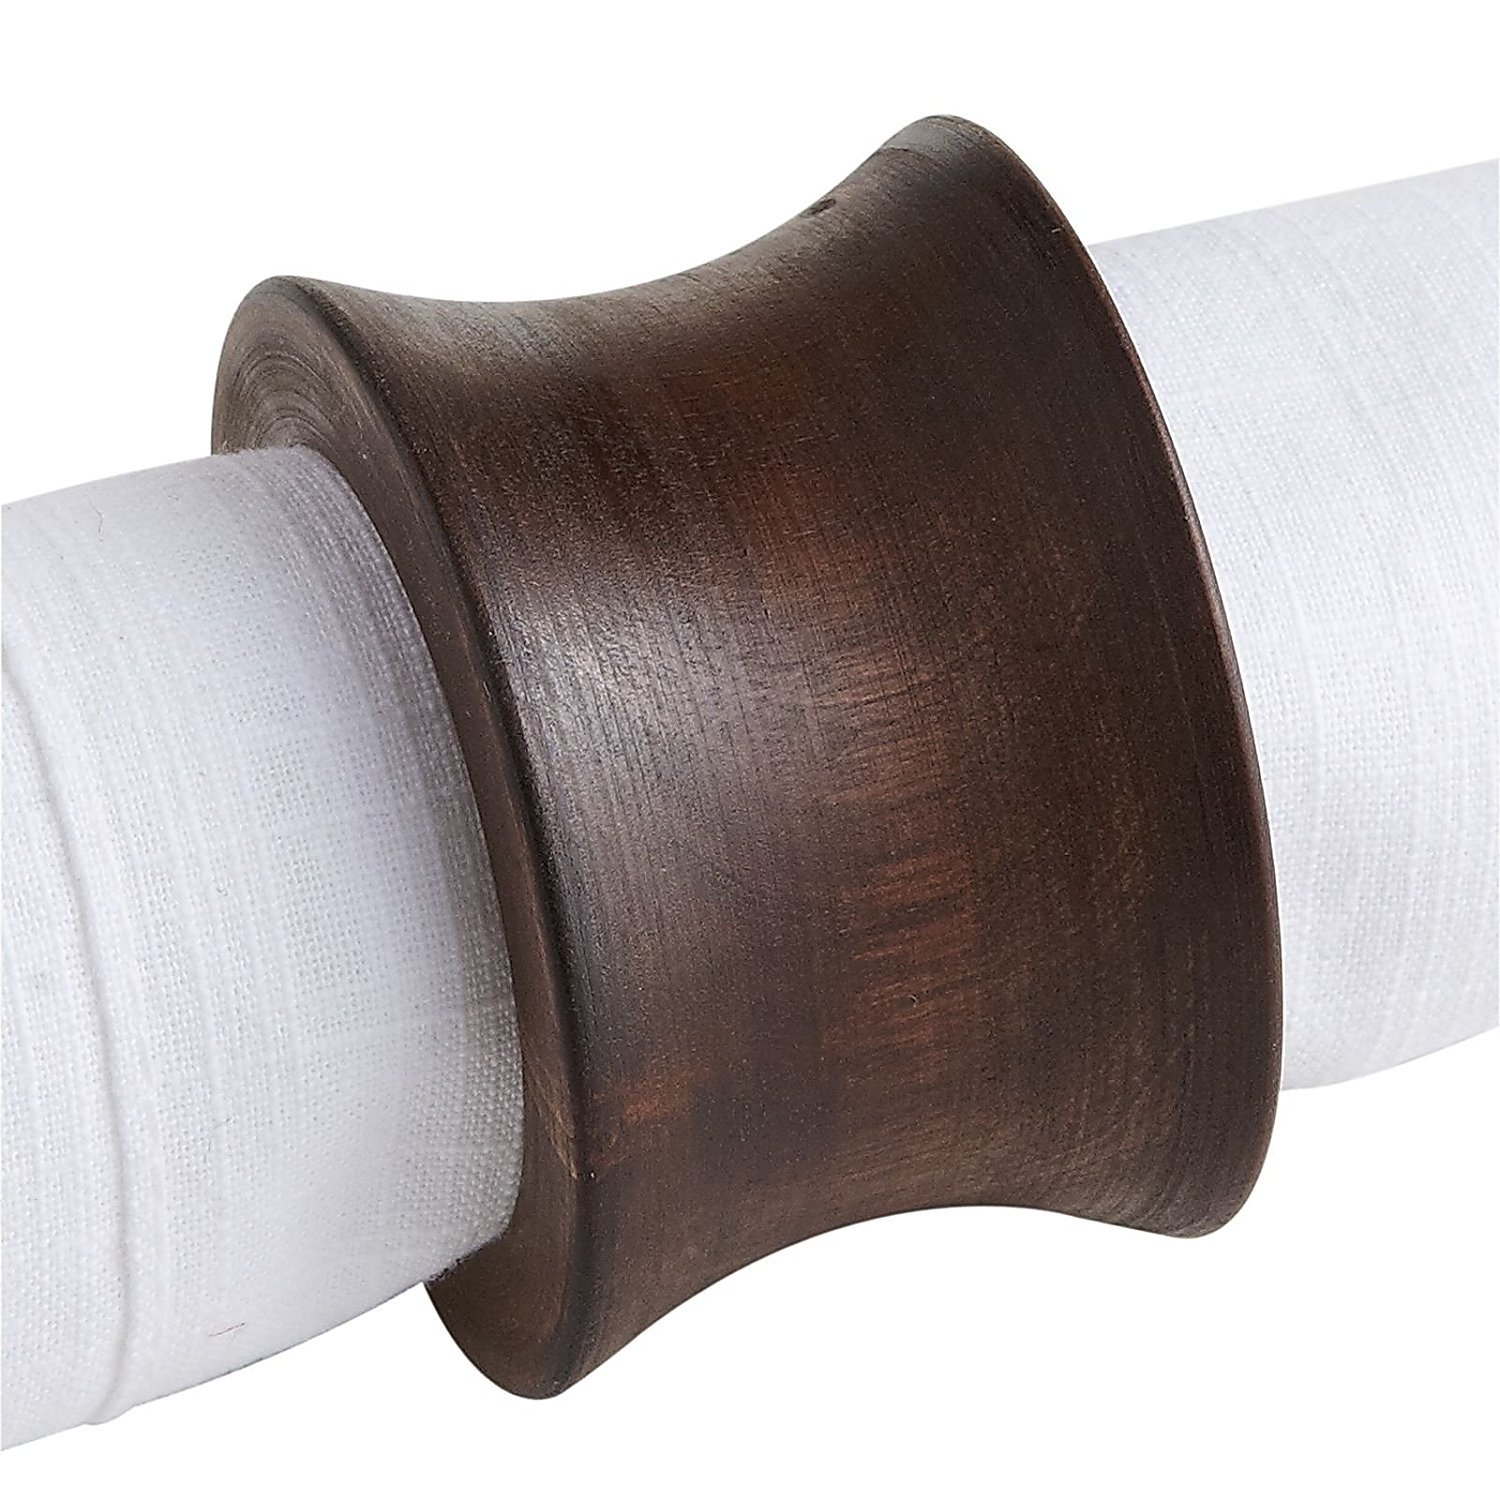 Worldexplorer Handmade Concave Wood Napkin Ring Set With Napkin Rings - Artisan Crafted in India (Pack of 8)